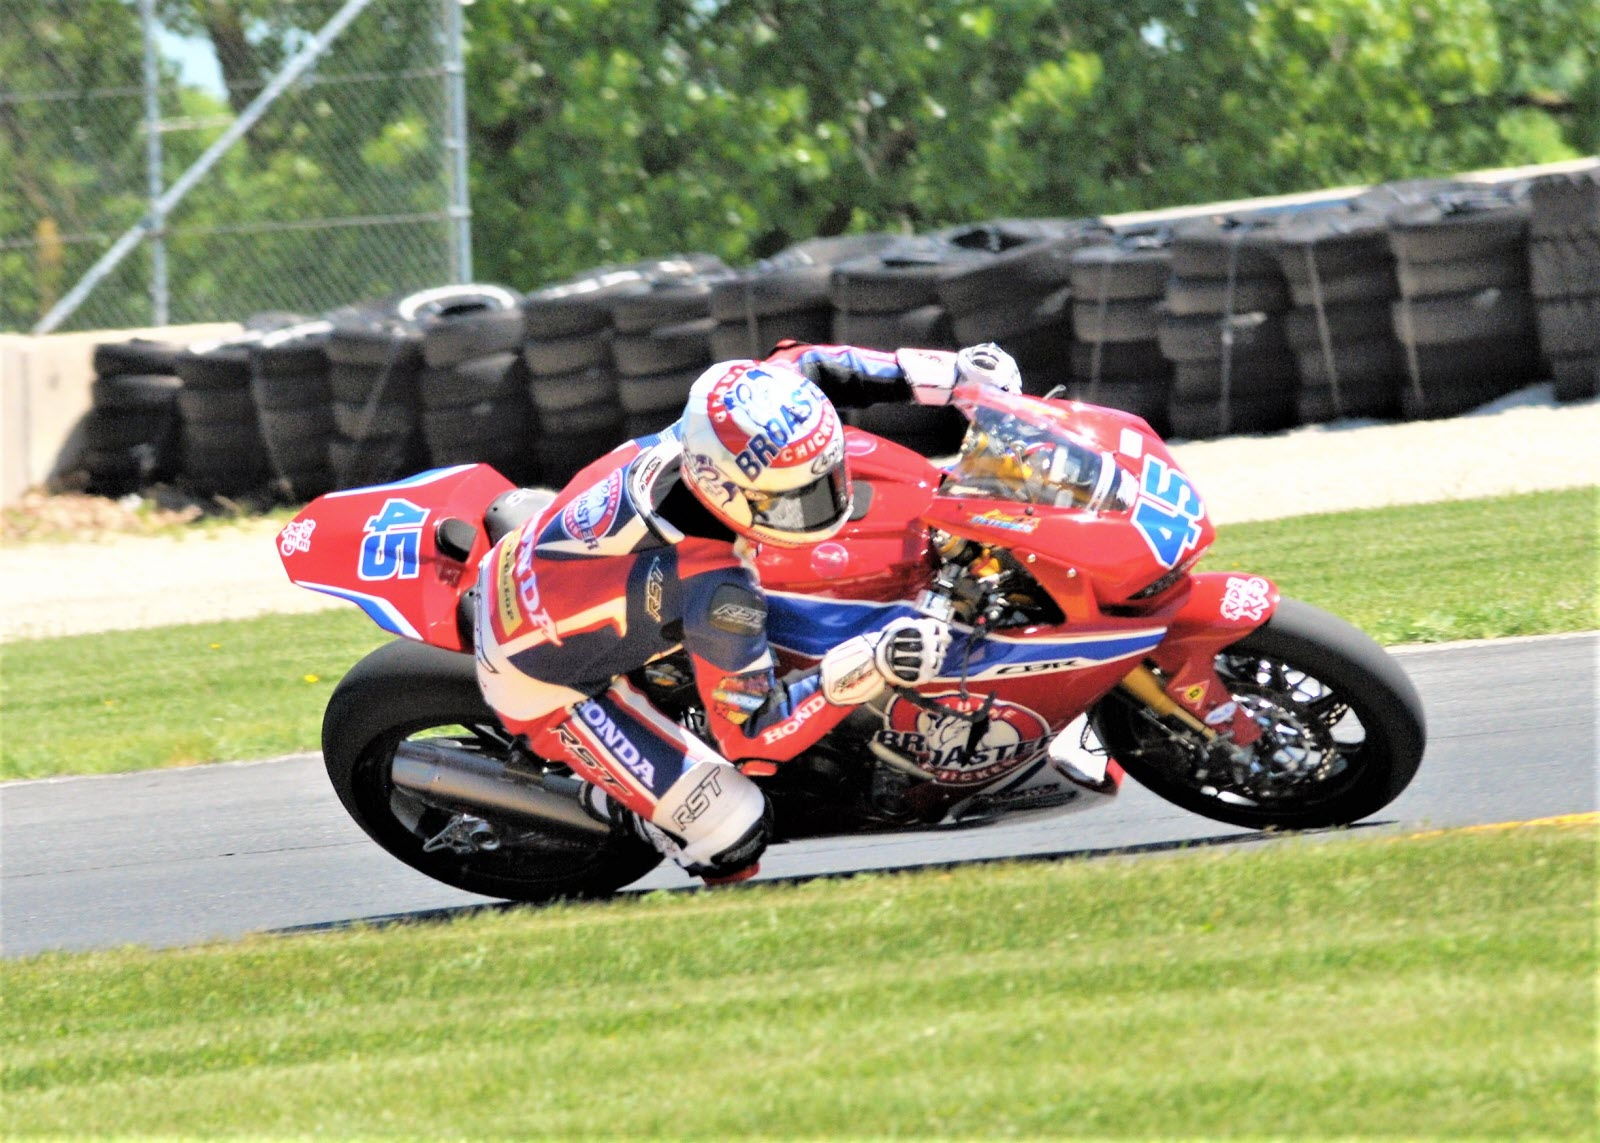 #45 Cameron Peterson (Honda CBR-1000RR) in turn 14 in Motul Superbike class. [Dave Jensen Photo]